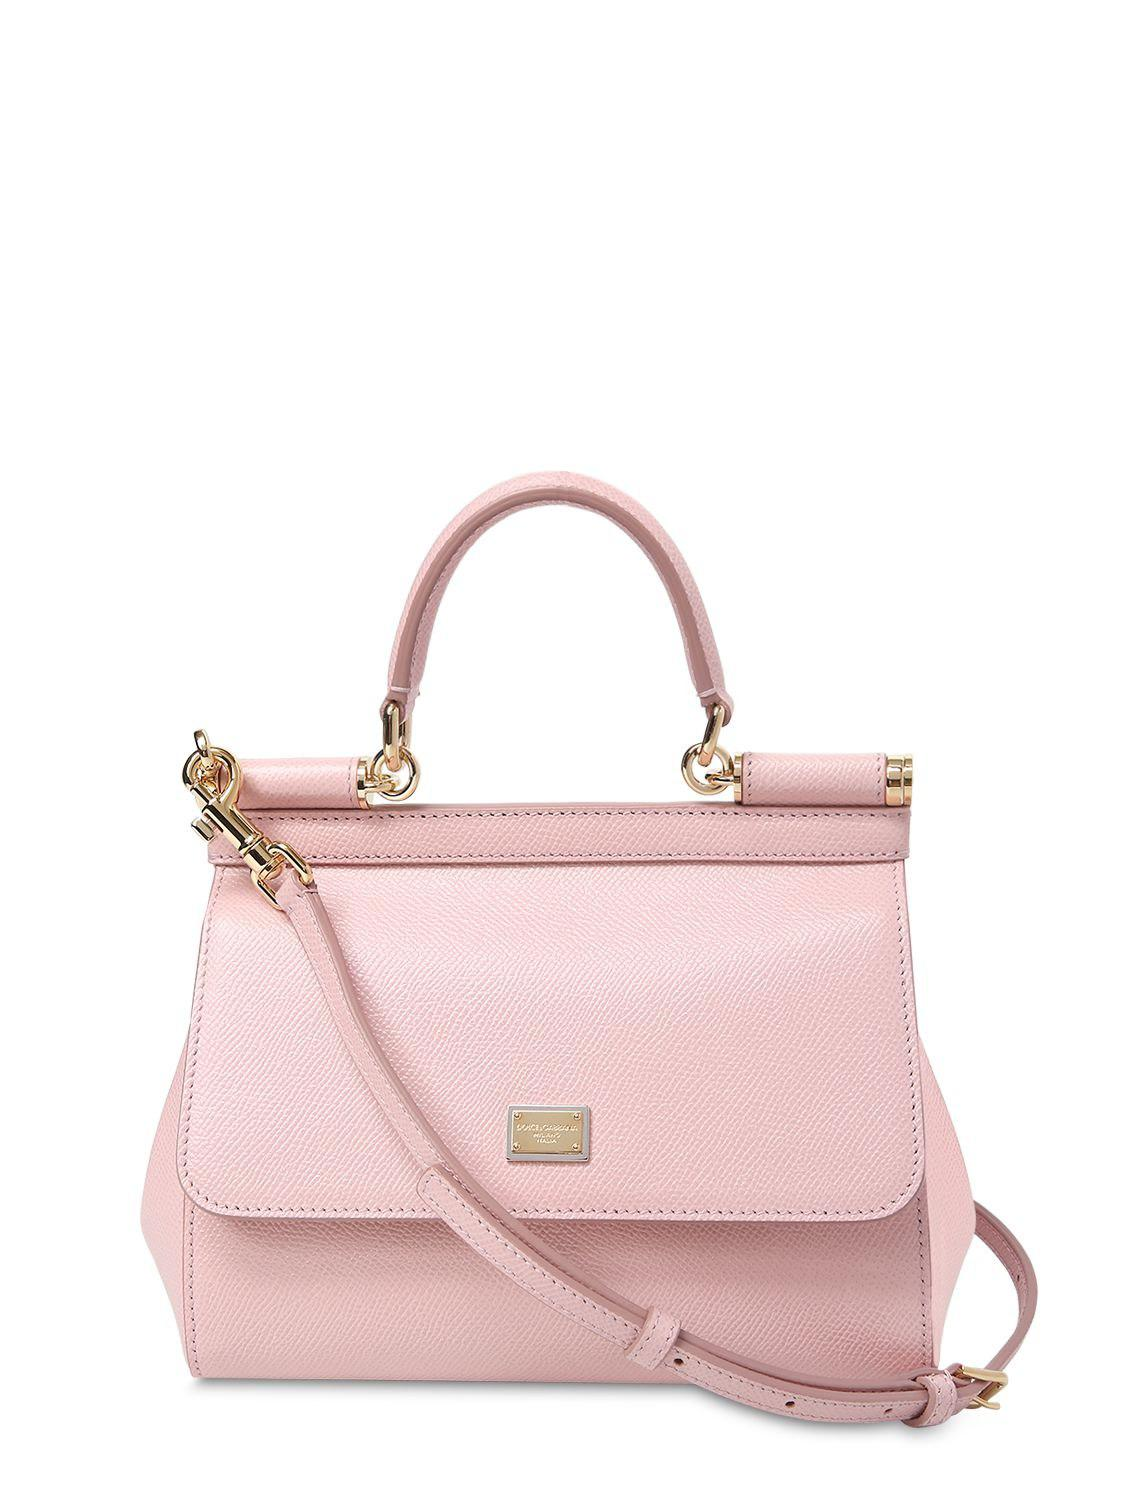 6284340bb1 Lyst - Dolce   Gabbana Small Sicily Dauphine Leather Bag in Pink